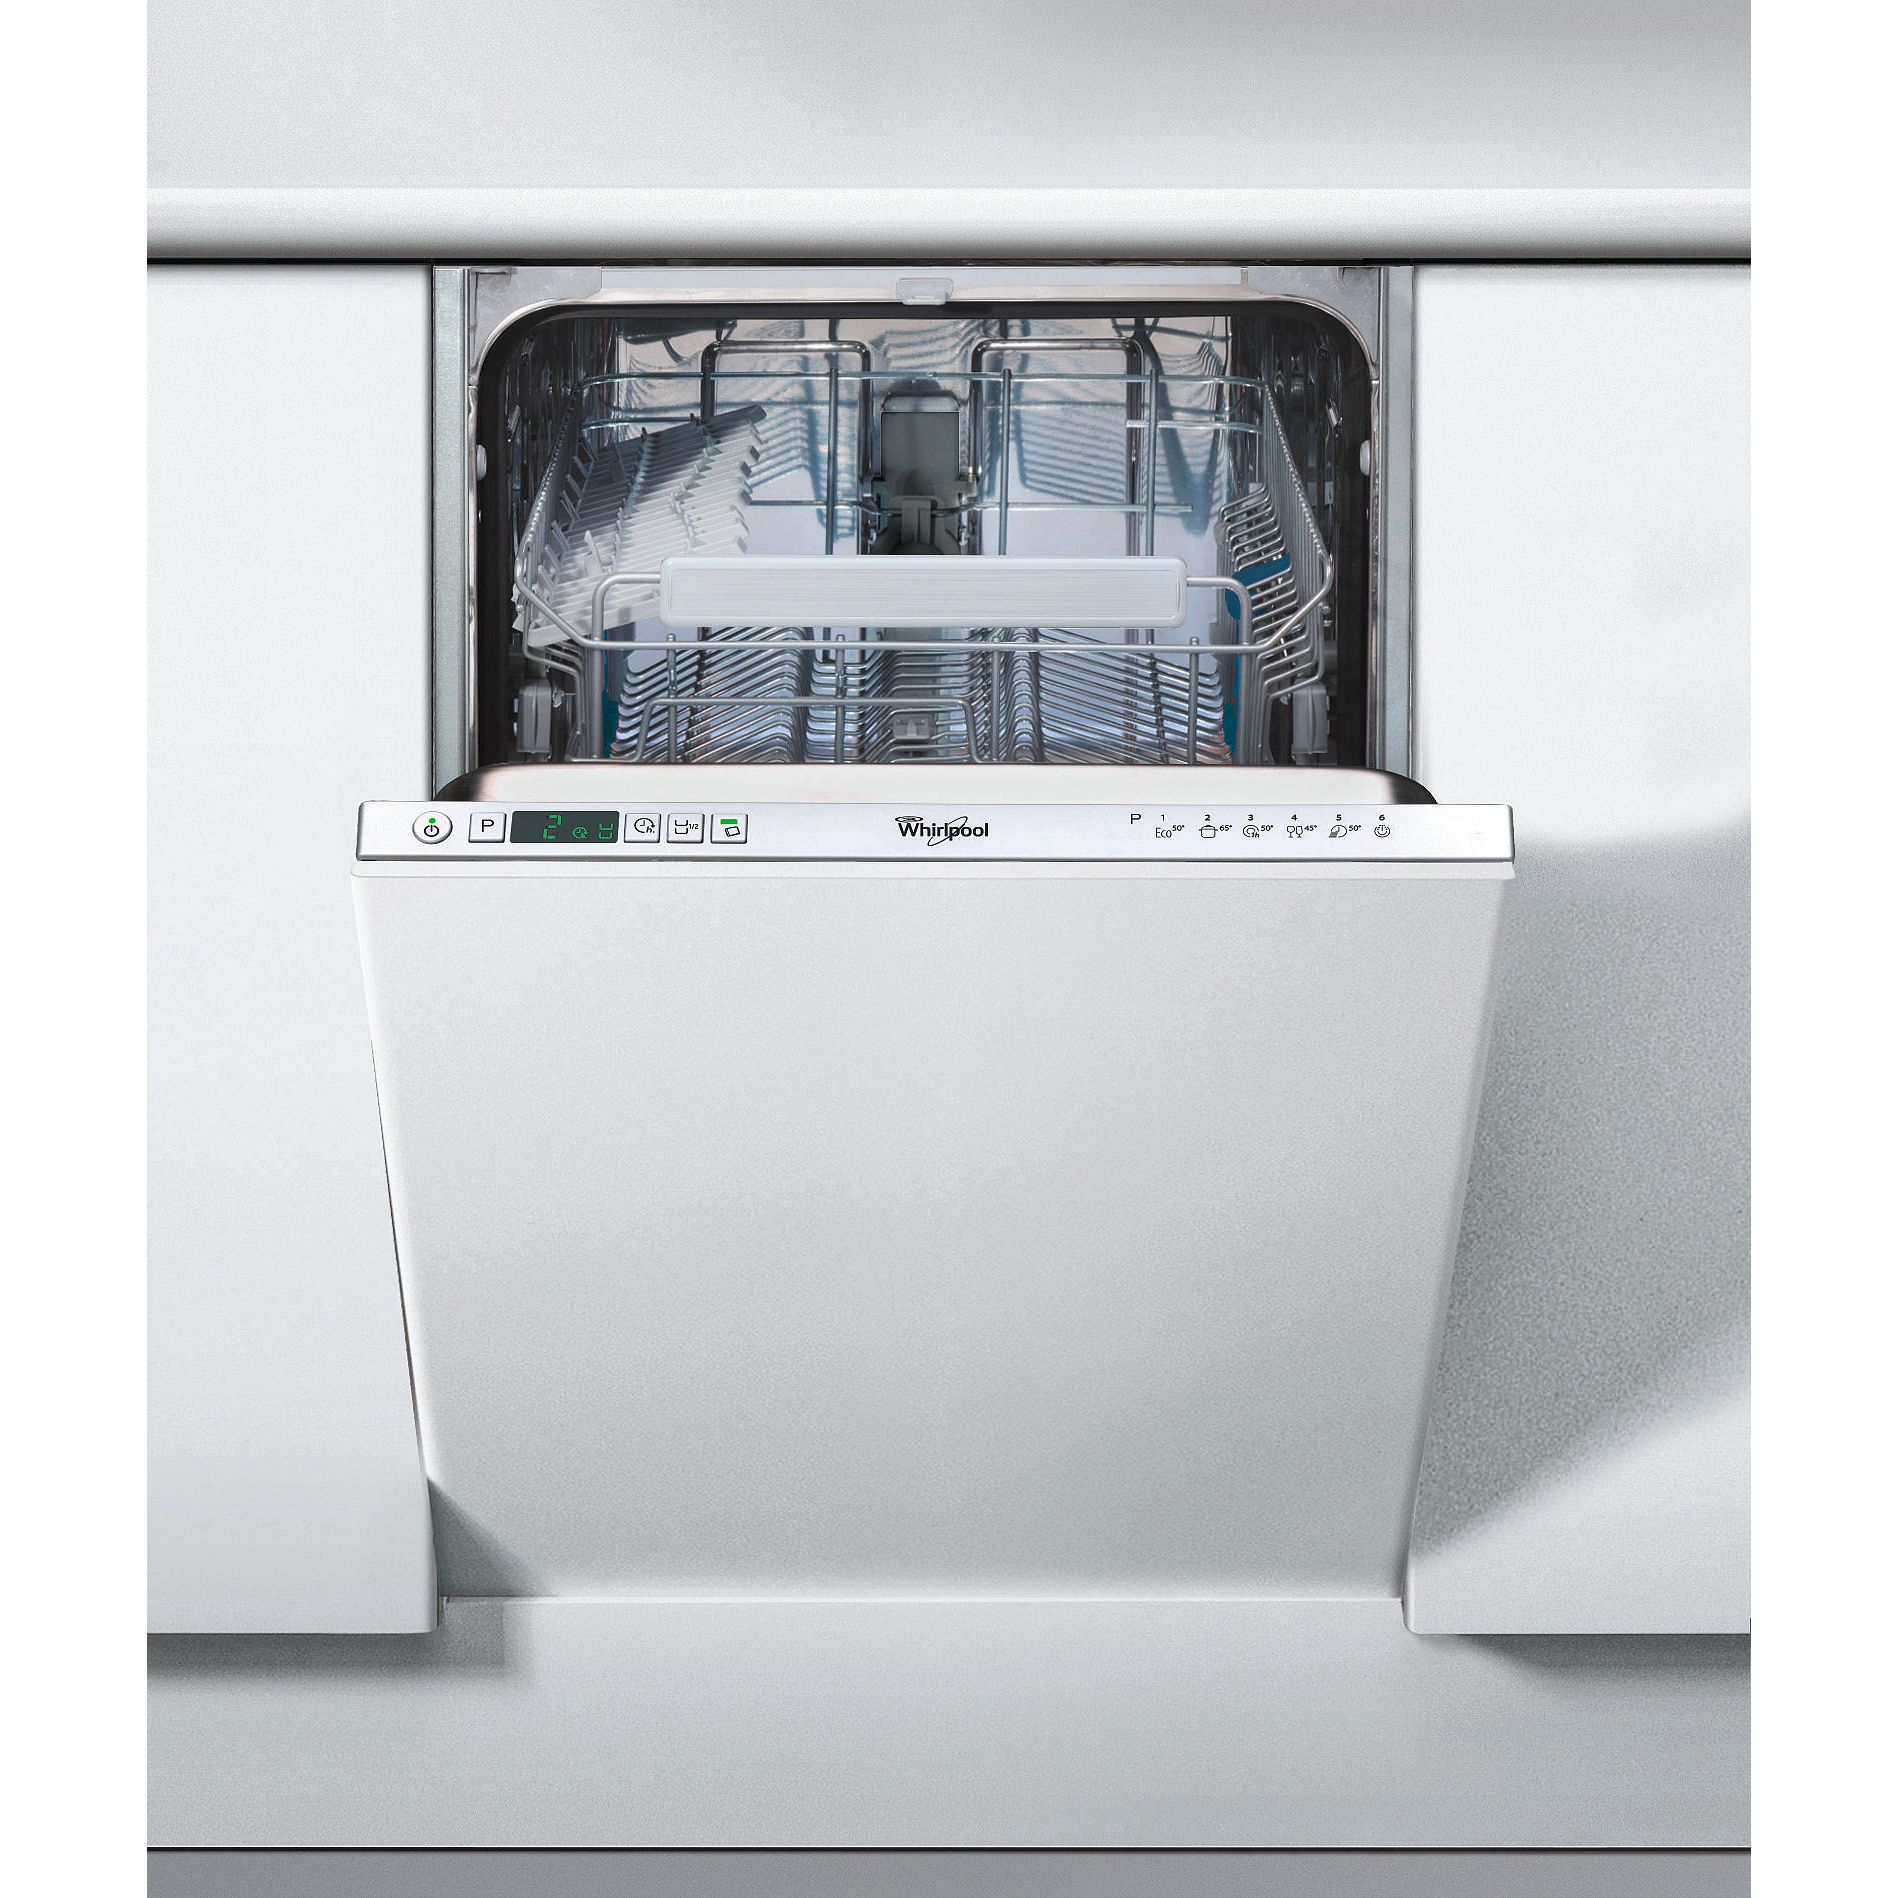 Whirlpool ADG 301 review, pret, pareri, opinii